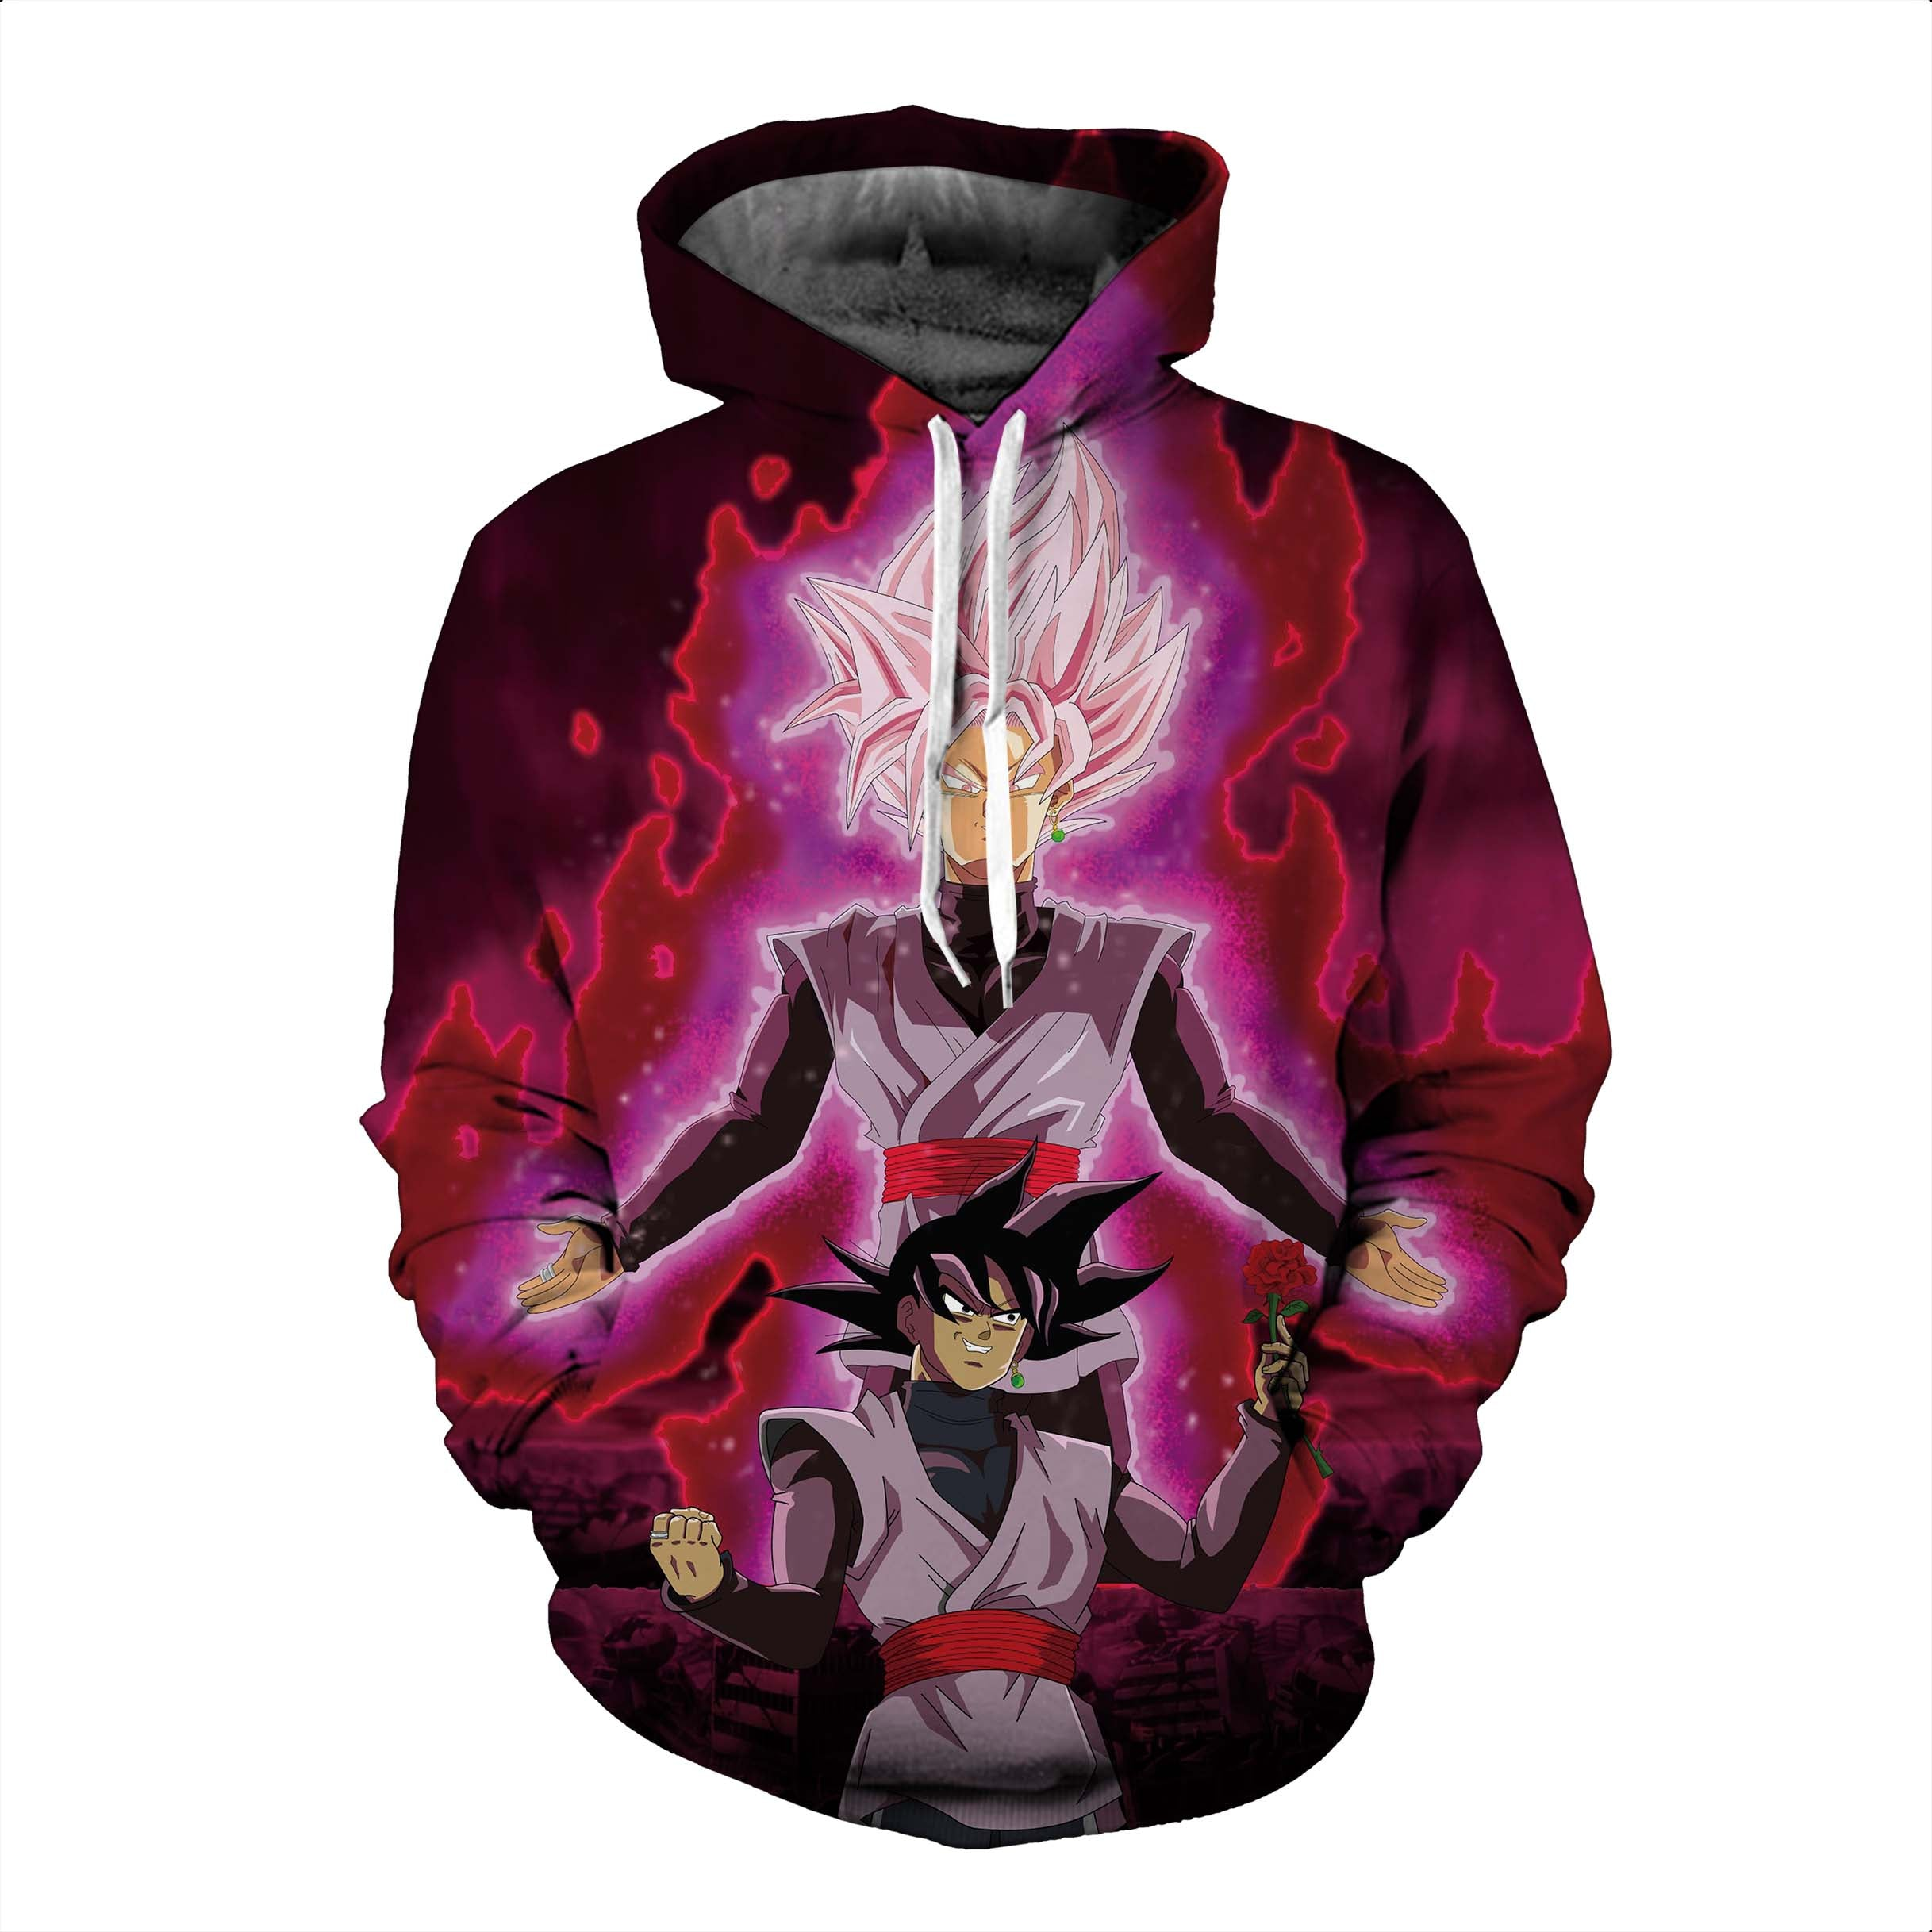 Dragon Ball Hoodies, 3D Clear Print, Best Quality : Design 6586